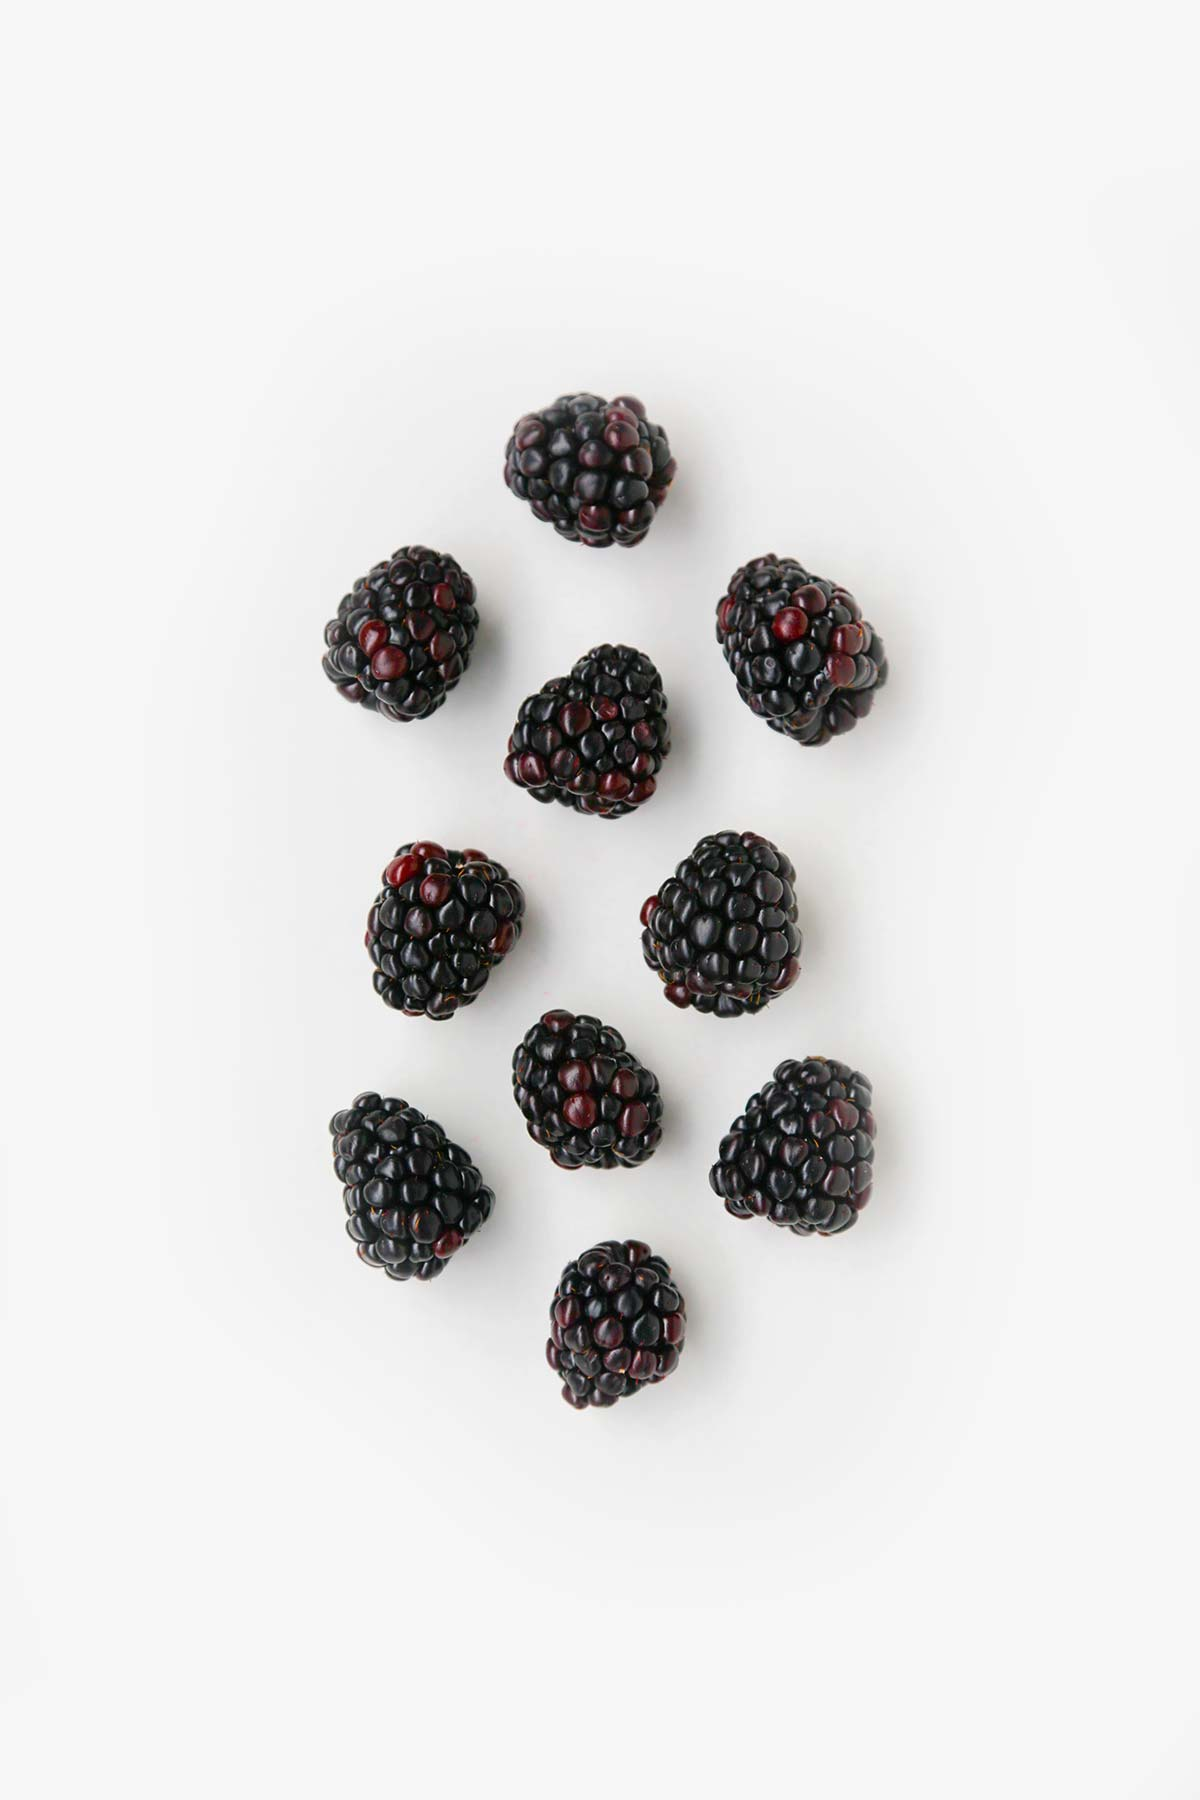 Keto Blackberries, a guide to keto foods for low carb. keto, keto ingredients, keto foods, keto produce, keto fruits, ketogenic diet, keto shopping list, low carb, low carb foods, low carb fruits, lchf, lchf foods, lchf fruit